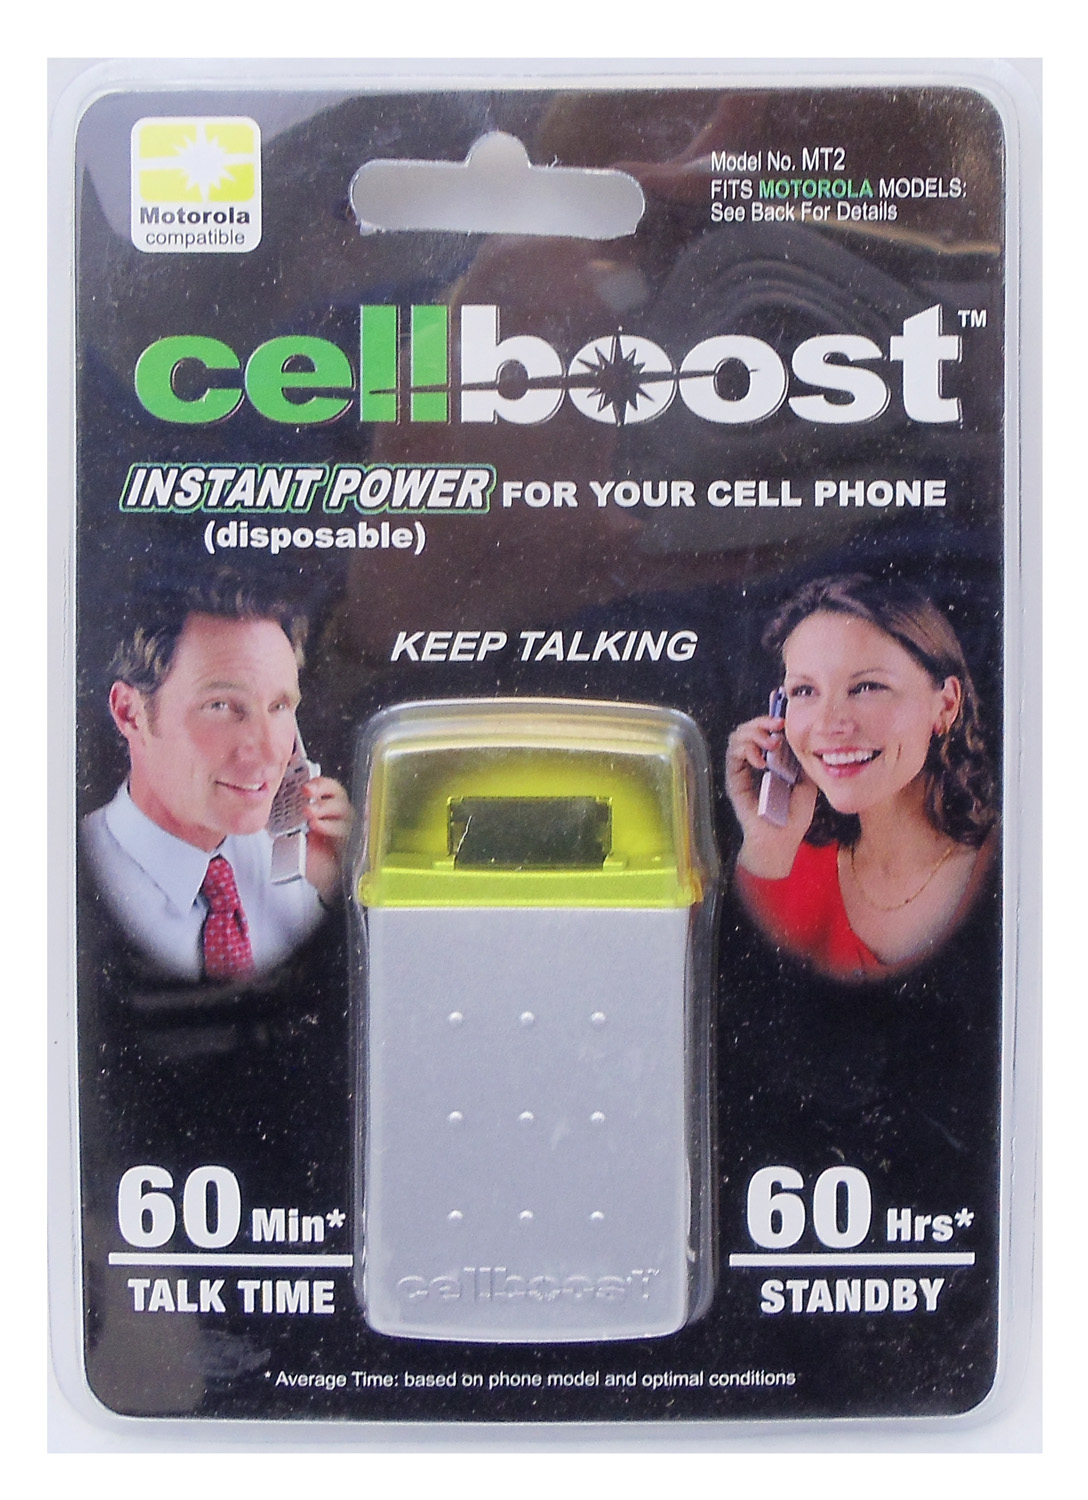 CELLBOOST PROVIDES INSTANT POWER UP TO 60 MINUTES TALK TIME & 60 HOURS STANDBY FOR MOTOROLA STAR TRACK & OTHER PHONES